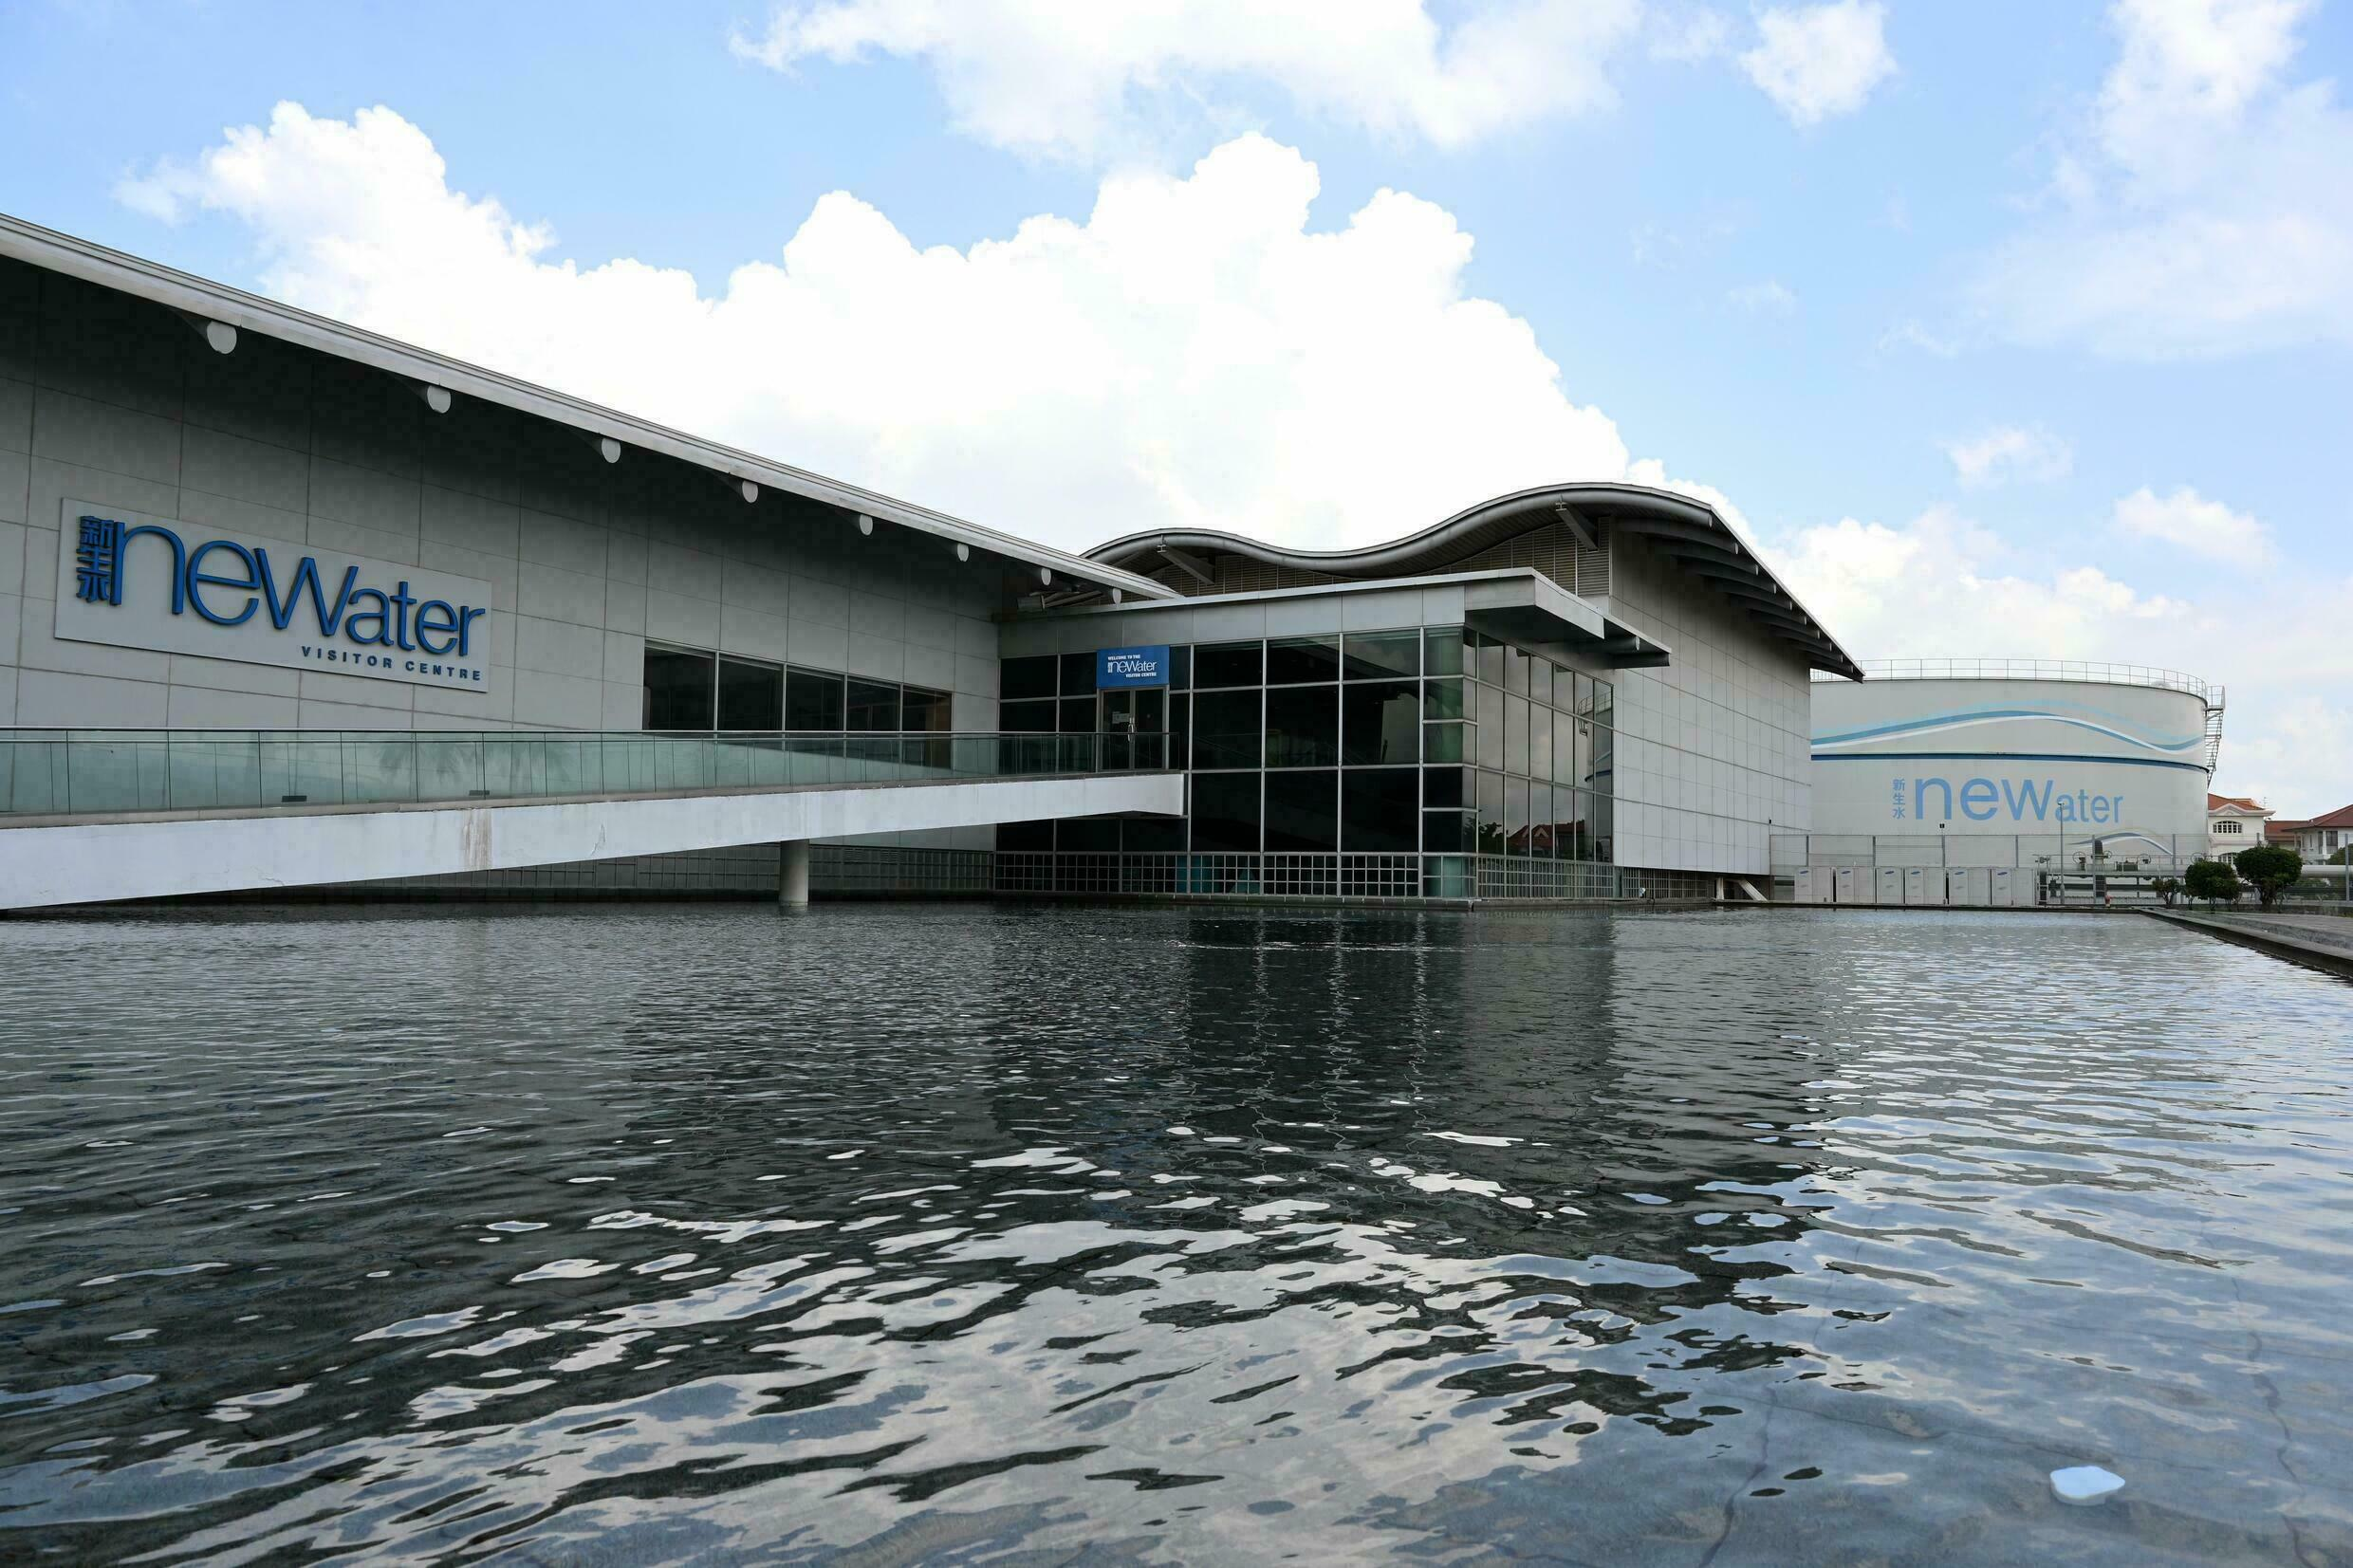 Singapore transforms sewage into water clean enough to drink, meeting 40 percent of the island nation's water demand.